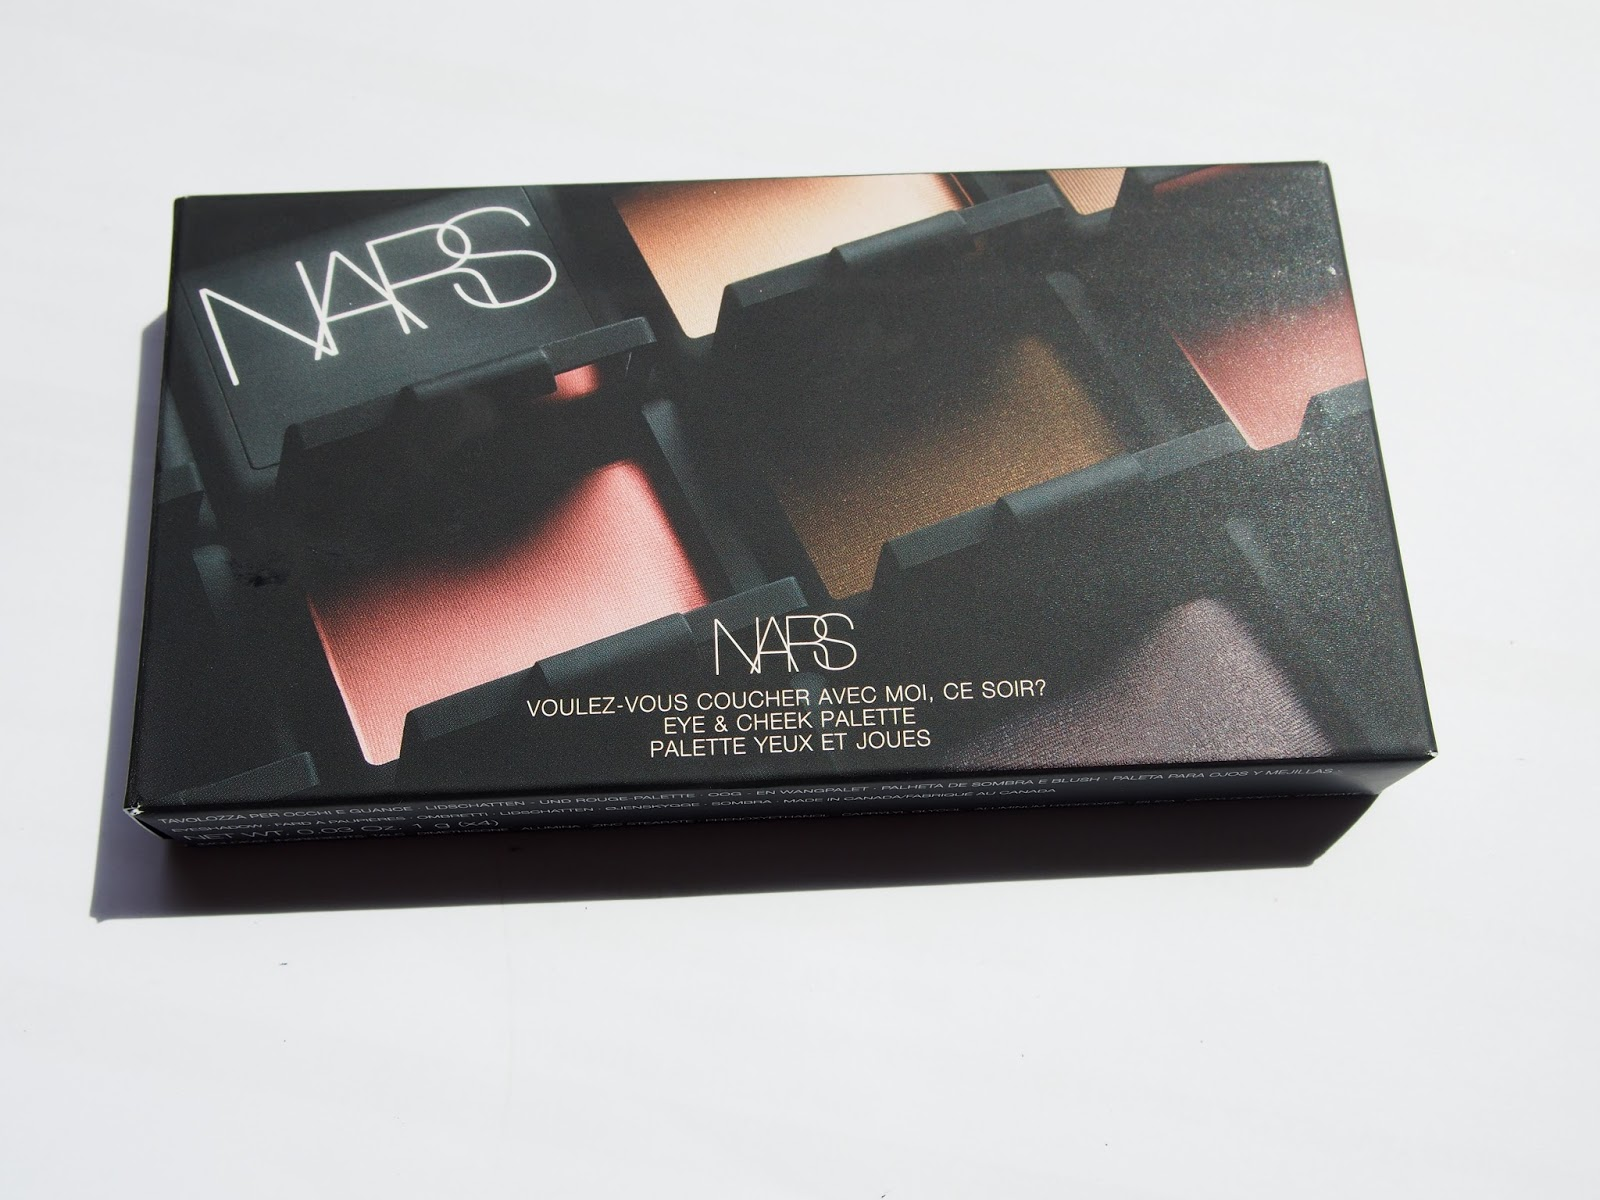 My beauty hoard nars voulez vous coucher vec moi ce soir eye and cheek palette swatches and review - Voulez vous coucher avec moi ce soir betekenis ...